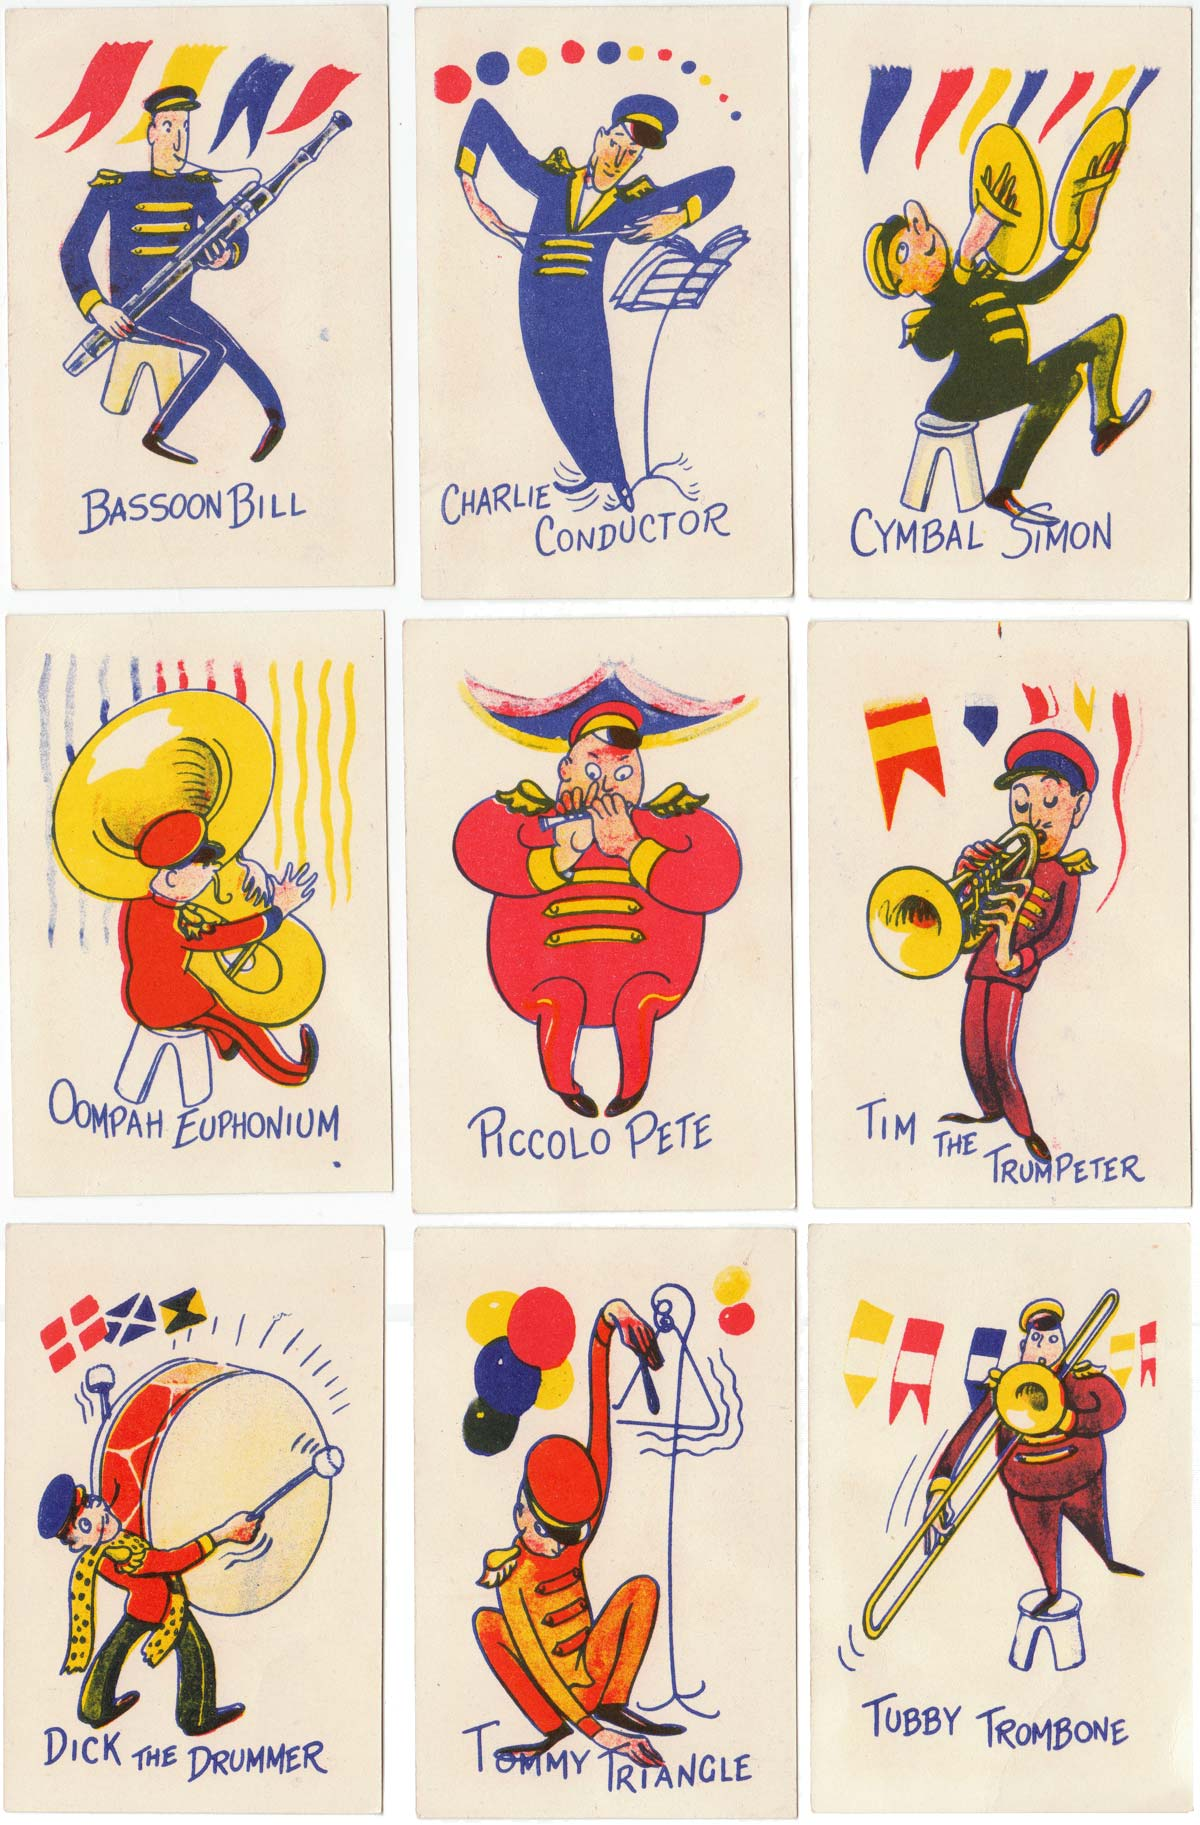 Bandsman Snap by Chiefton Products Ltd of Bristol, c.1950s